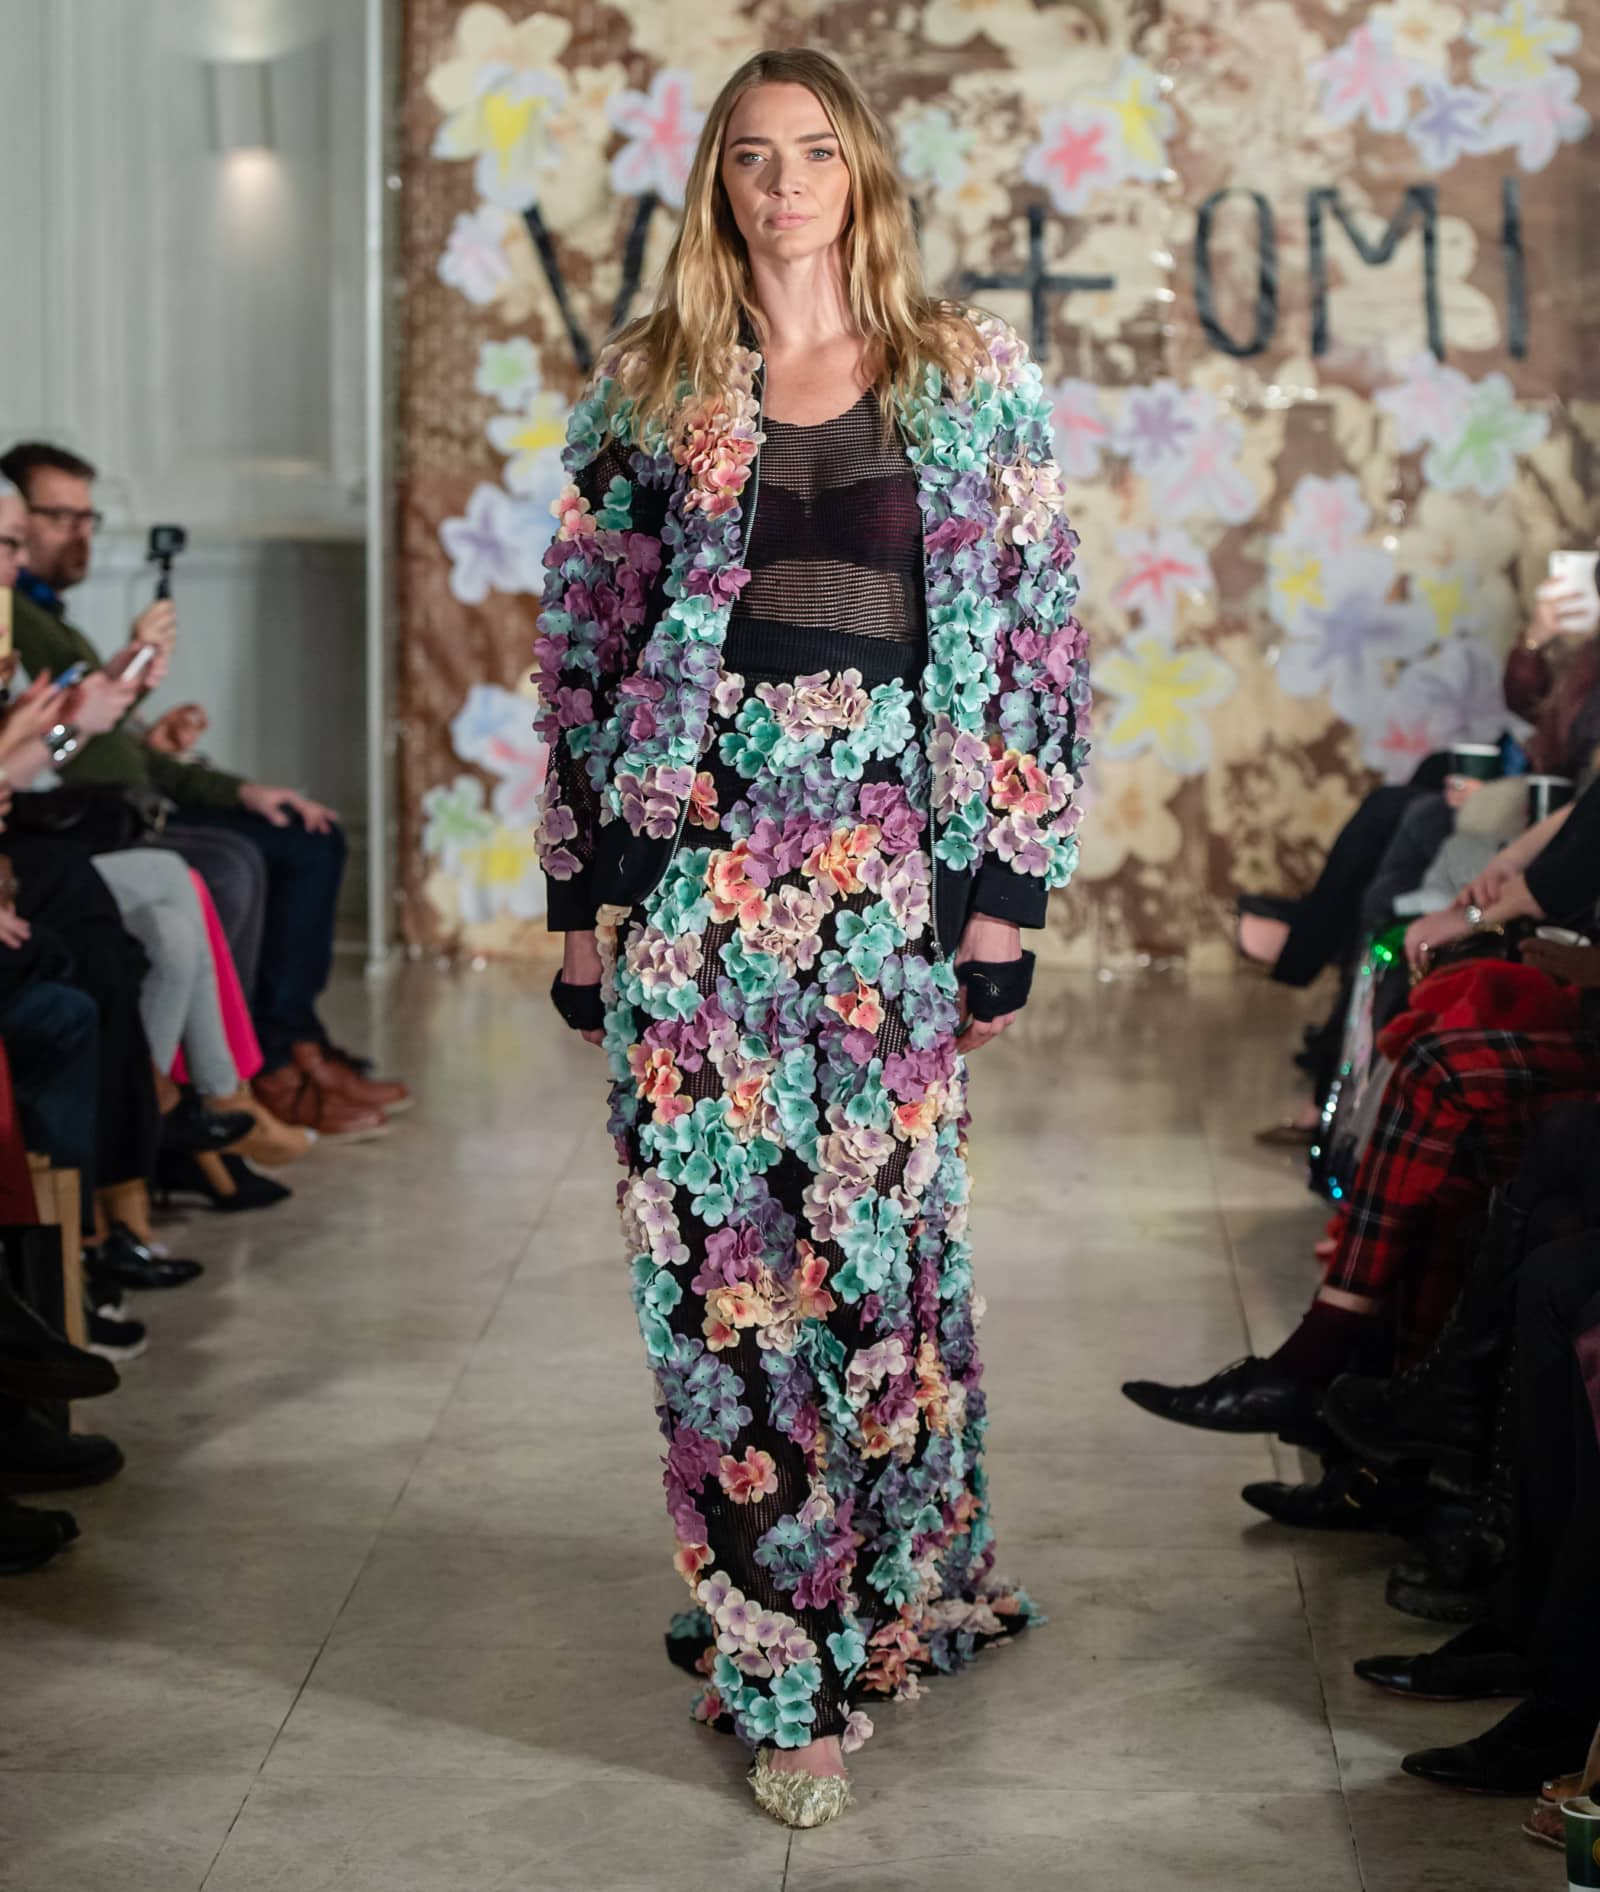 jodie-kidd-vin-and-omi-london-fashion-week-freelance-photographer-richard-isaac-3200